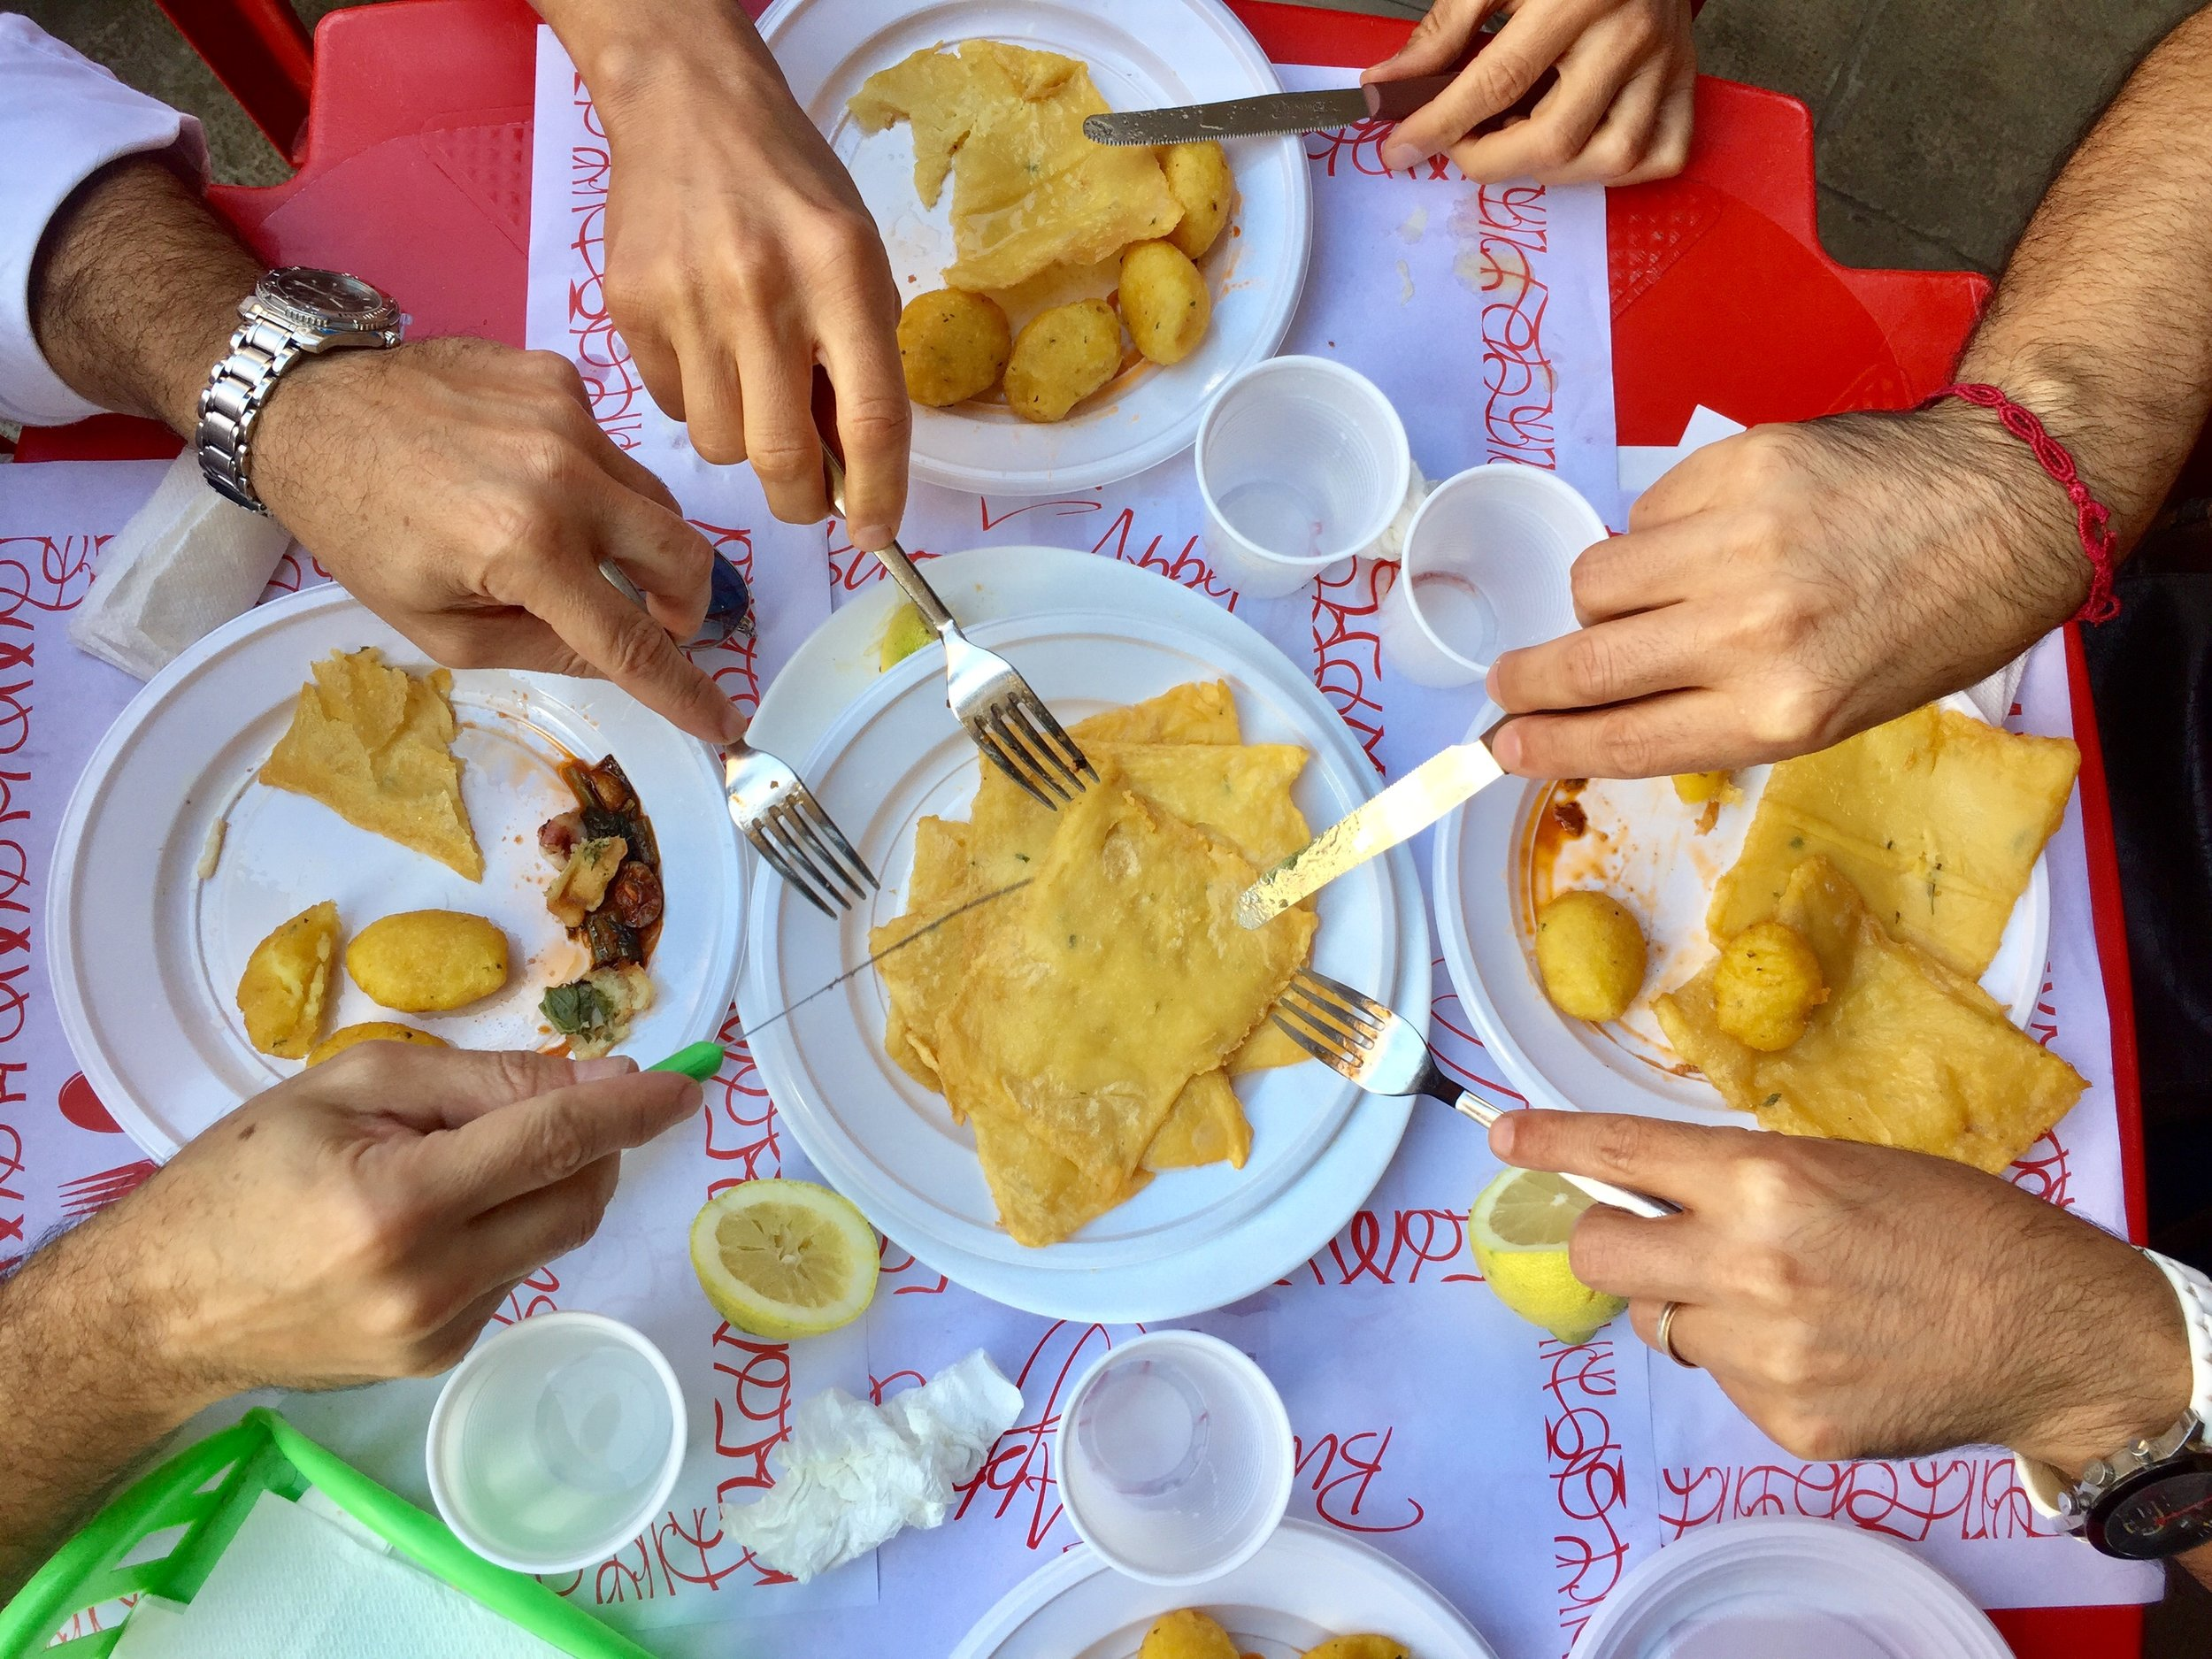 In the Capo market (Palermo), you will find Dainotti's Street Food, a cheap and casual eatery, but one of the best for street food where you can enjoy typical Sicilian dishes